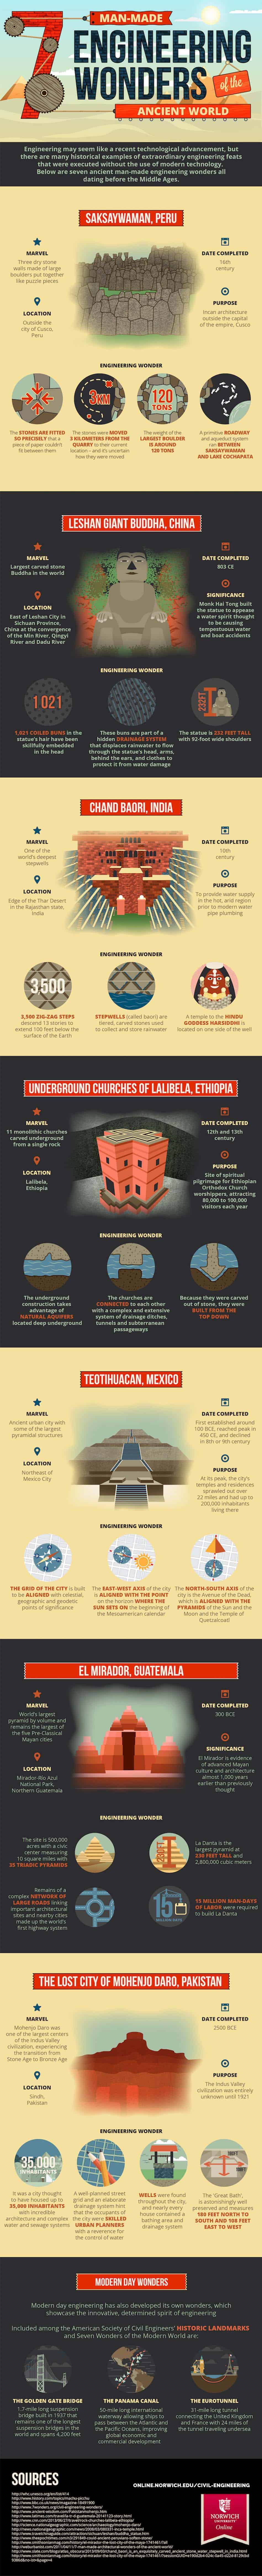 7 Man Made Engineering Wonders of the Ancient World Infographic